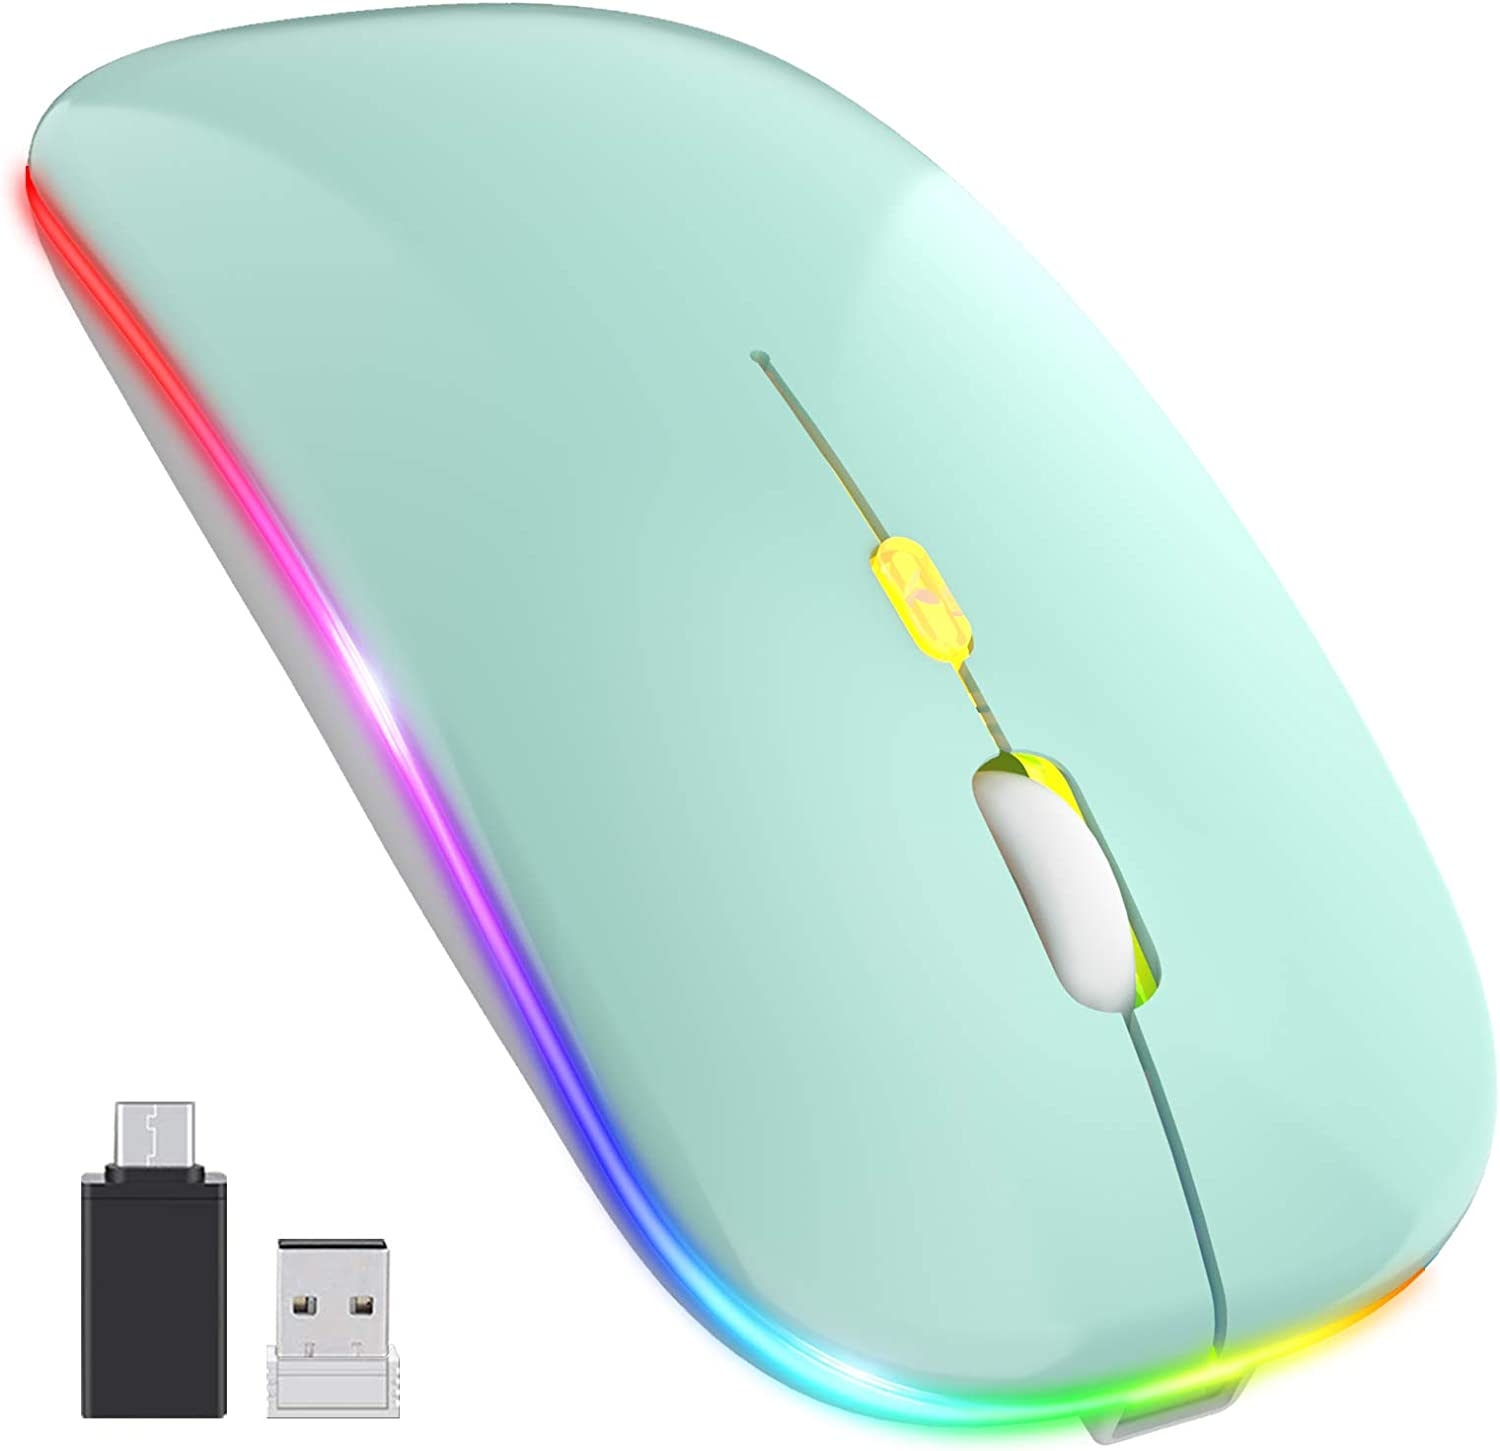 ?Upgrade? LED Wireless Mouse, Slim Silent Mouse 2.4G Portable Mobile Optical Office Mouse with USB & Type-c Receiver, 3 Adjustable DPI Levels for Notebook, PC, Laptop, Computer, MacBook (Mint Green)